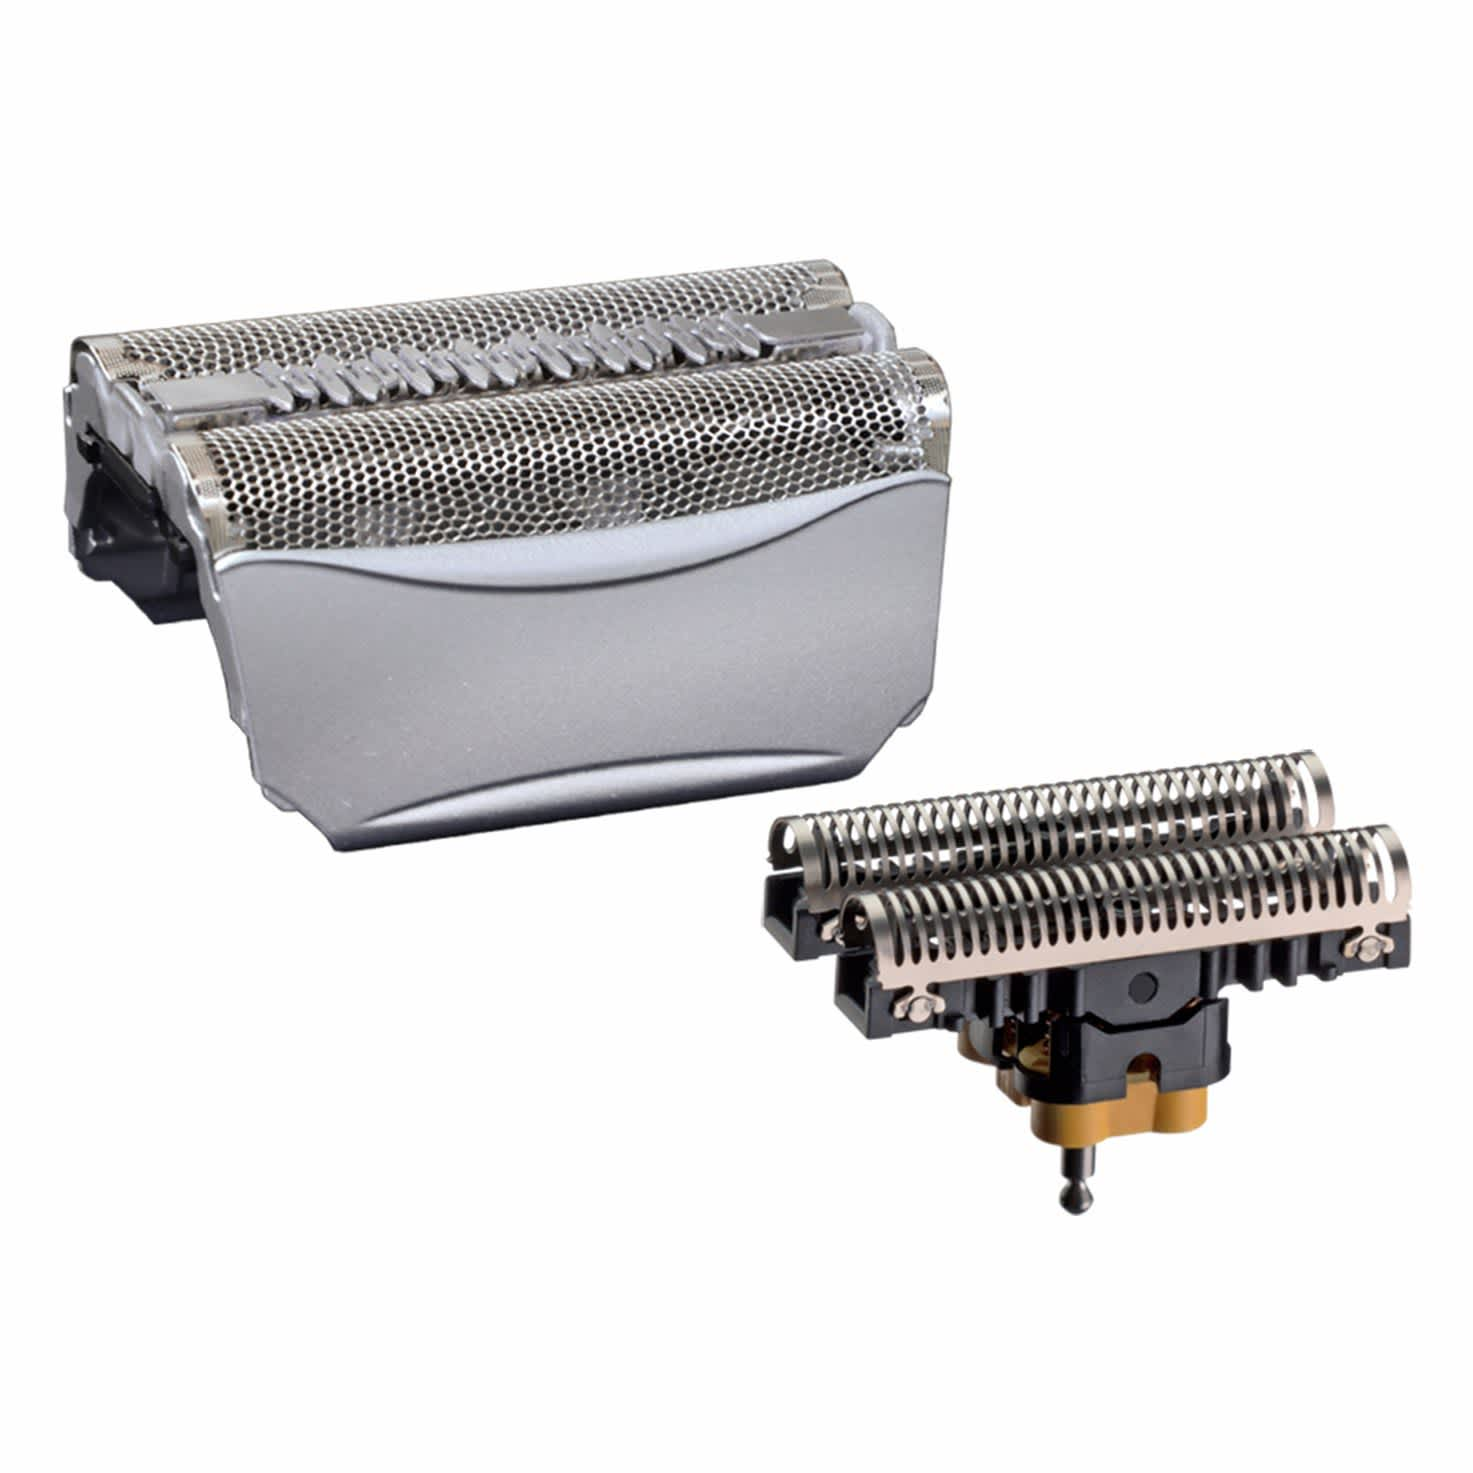 Braun Combi 51S Foil and Cutter replacement pack silver. For Series 5 (older generation), ContourPro, 360º, Complete, Activator, 8000 Series.